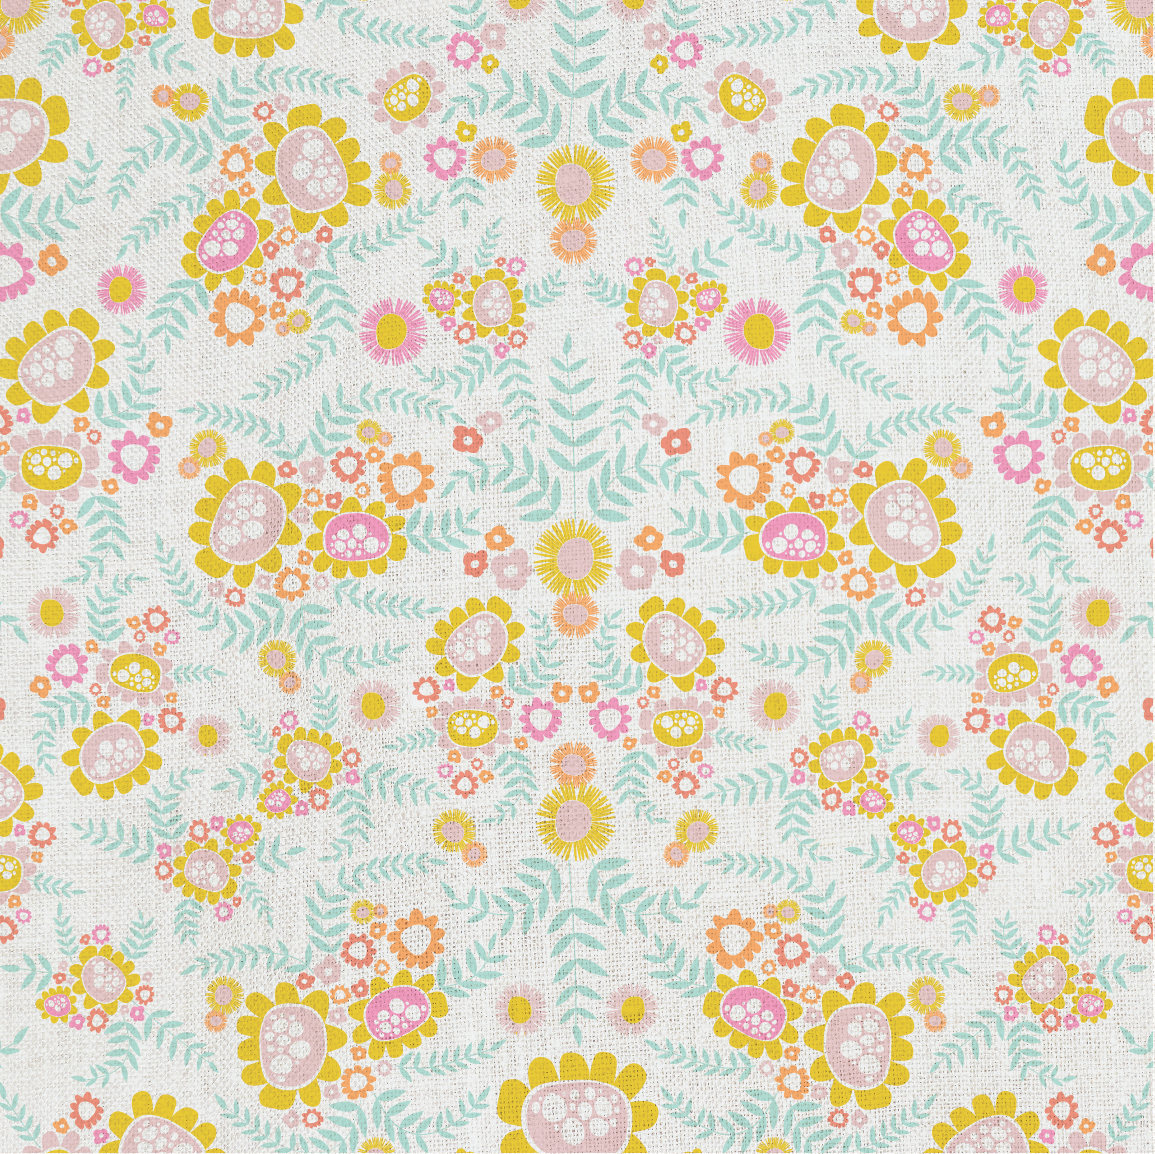 floral-fern-daisy-bohemian-hippie-pattern-surface-vintage-nonna-illustration-design.png